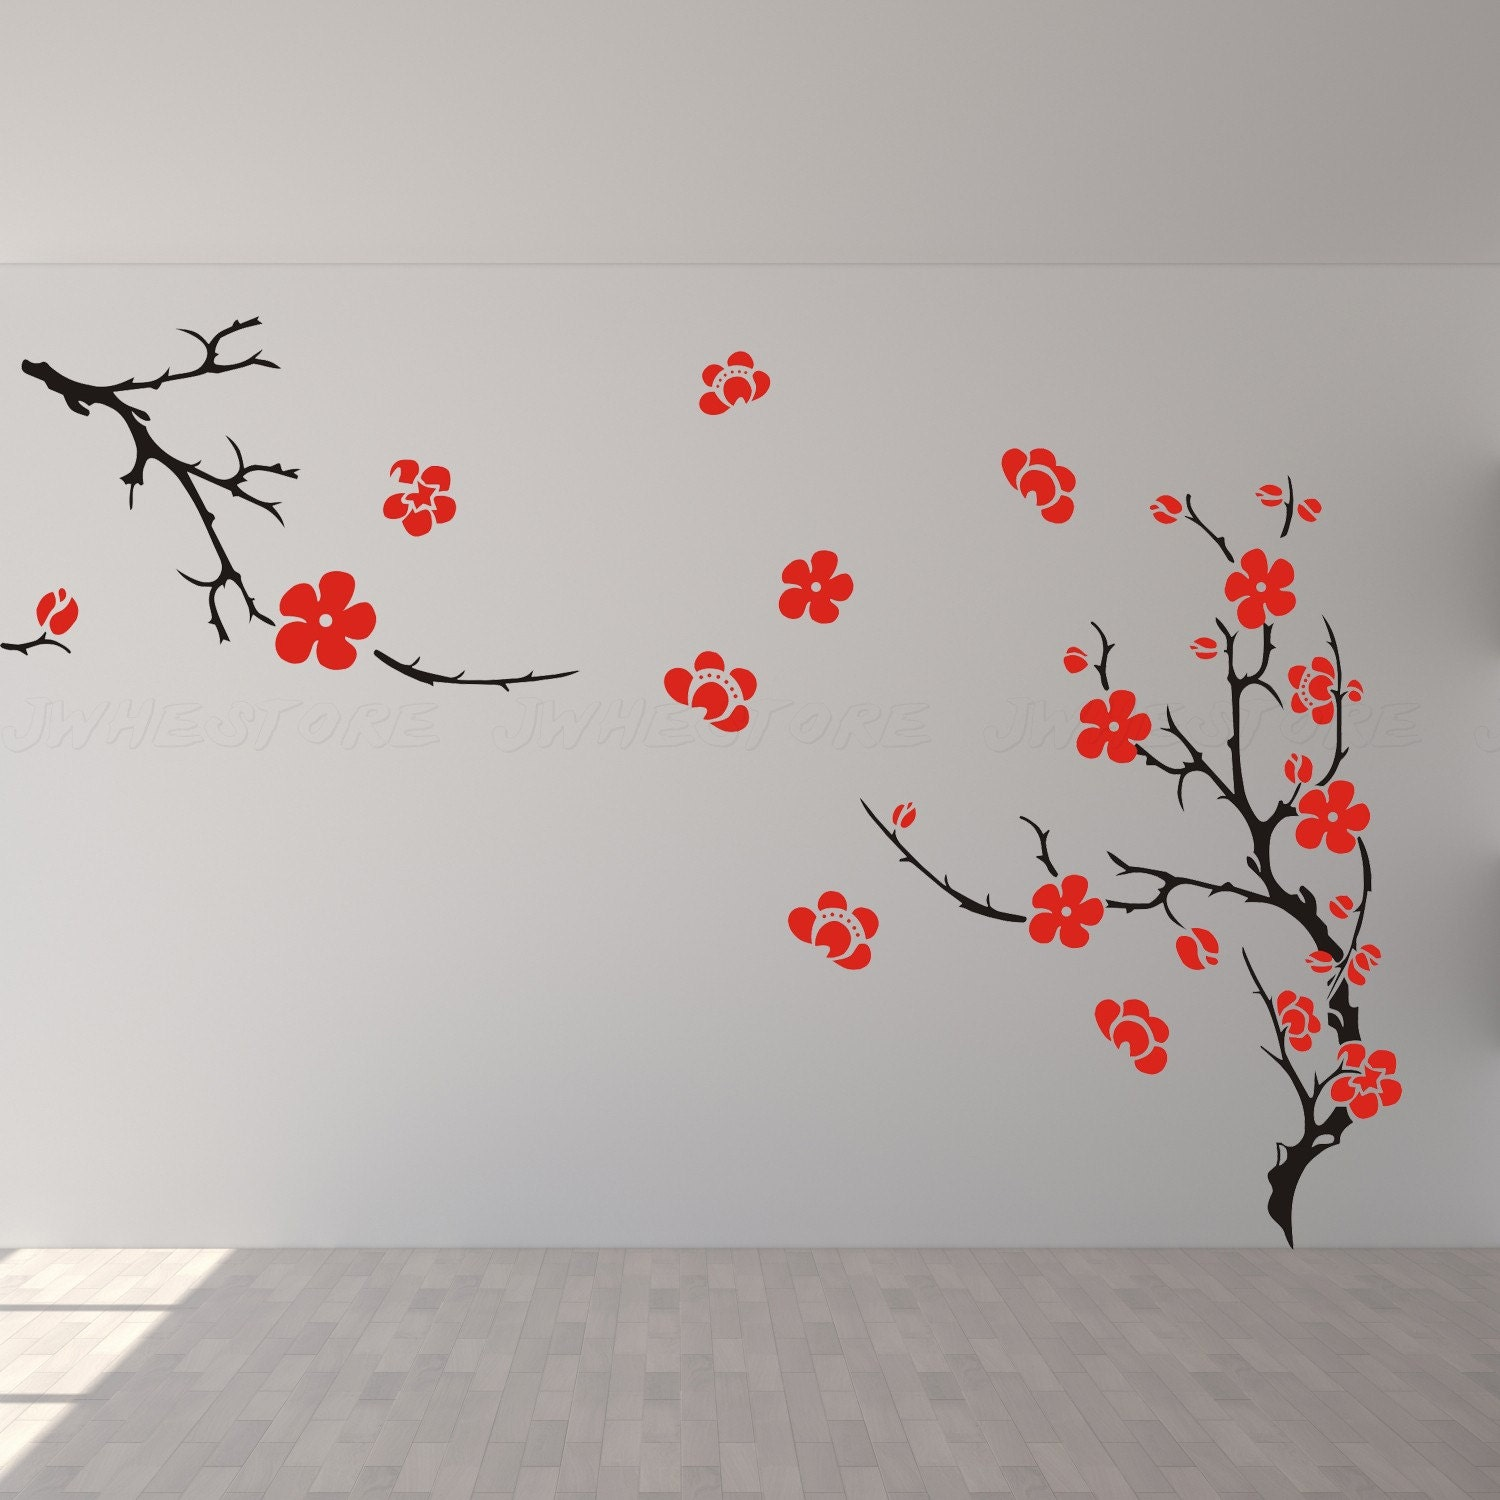 Wall Art Decals Cherry Blossom : Moved permanently